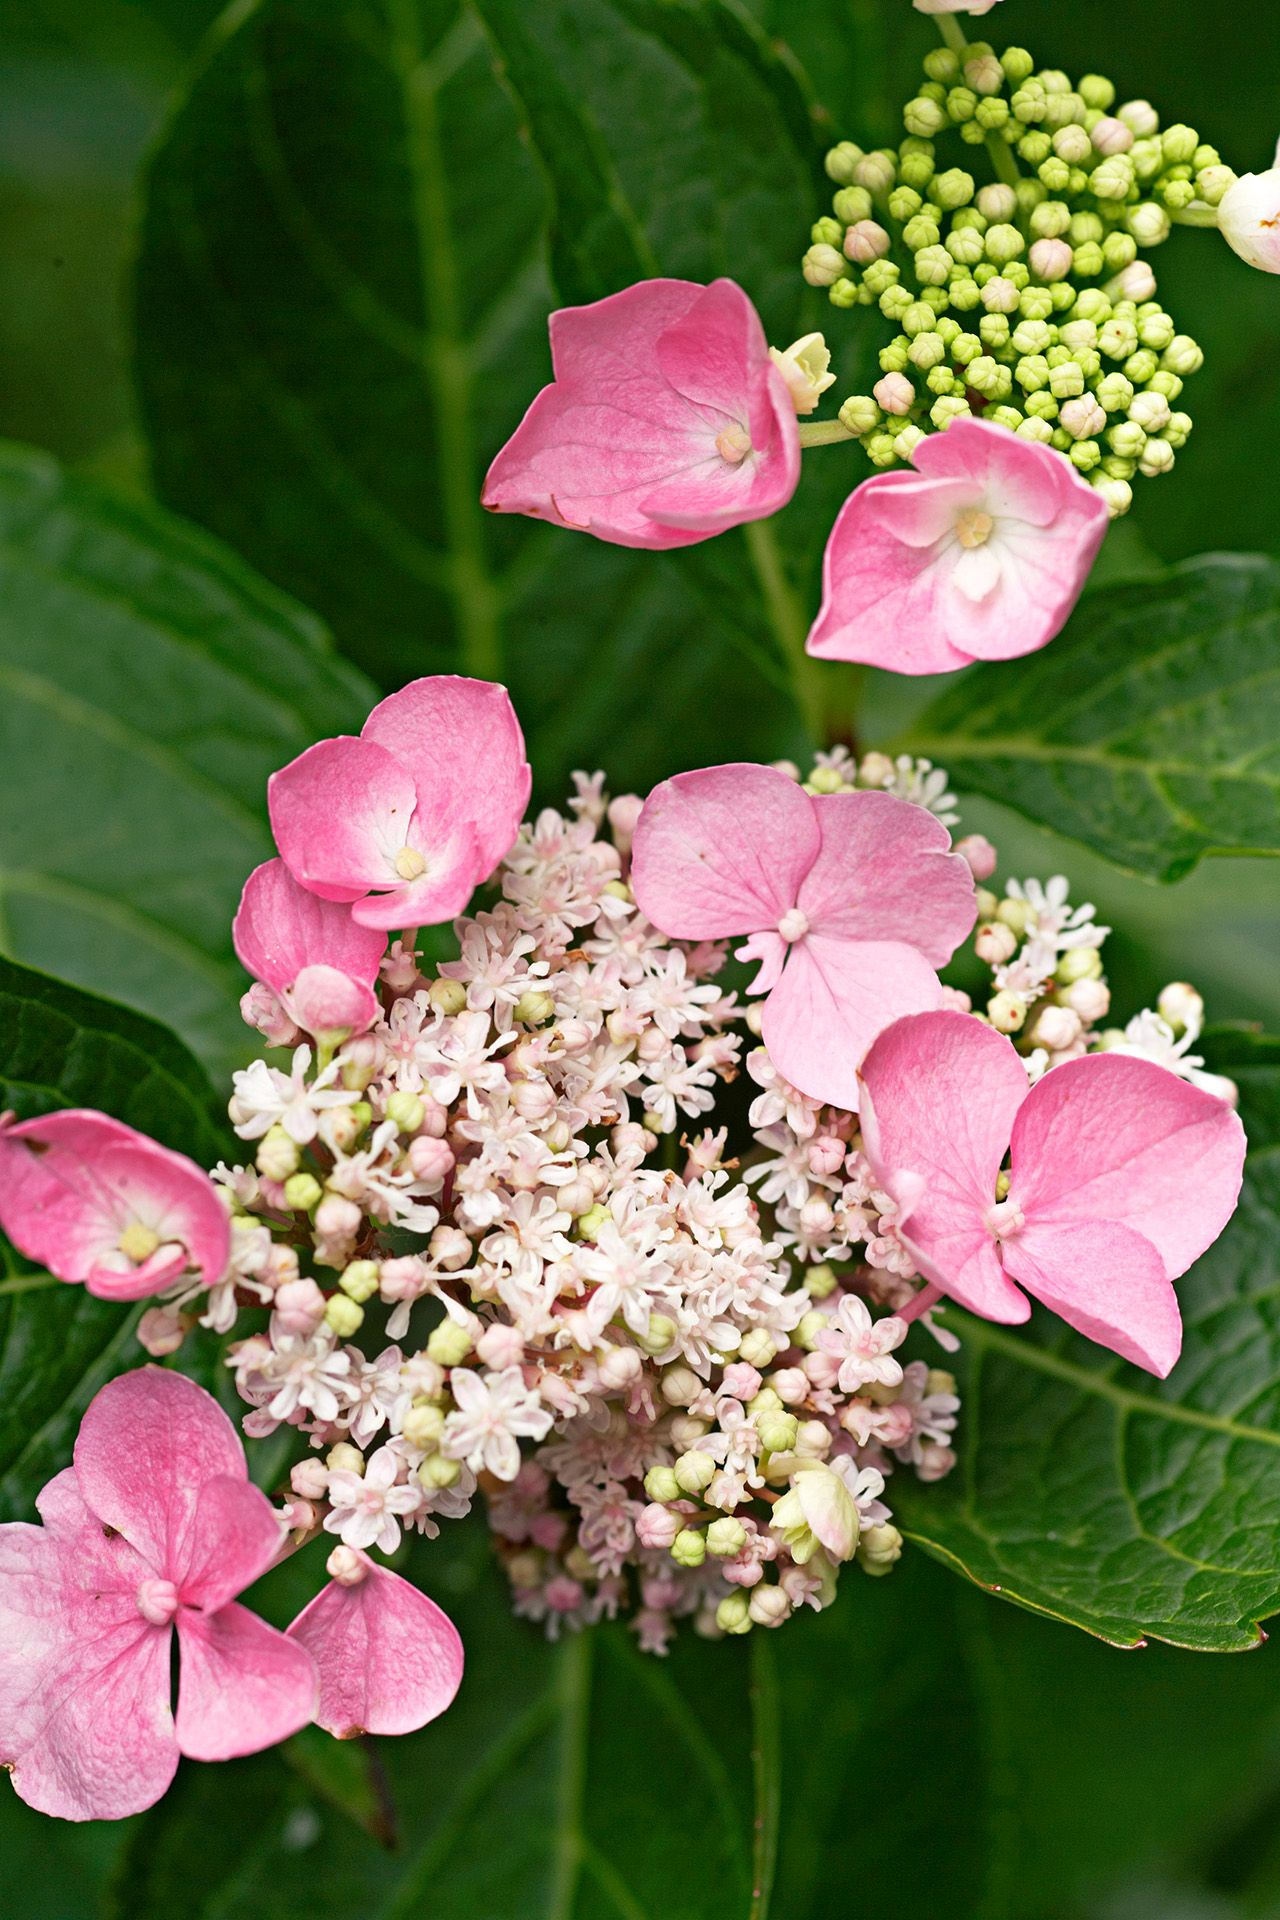 How To Choose And Care For The Most Colorful Hydrangeas In 2020 Hydrangea Care Types Of Hydrangeas Hydrangea